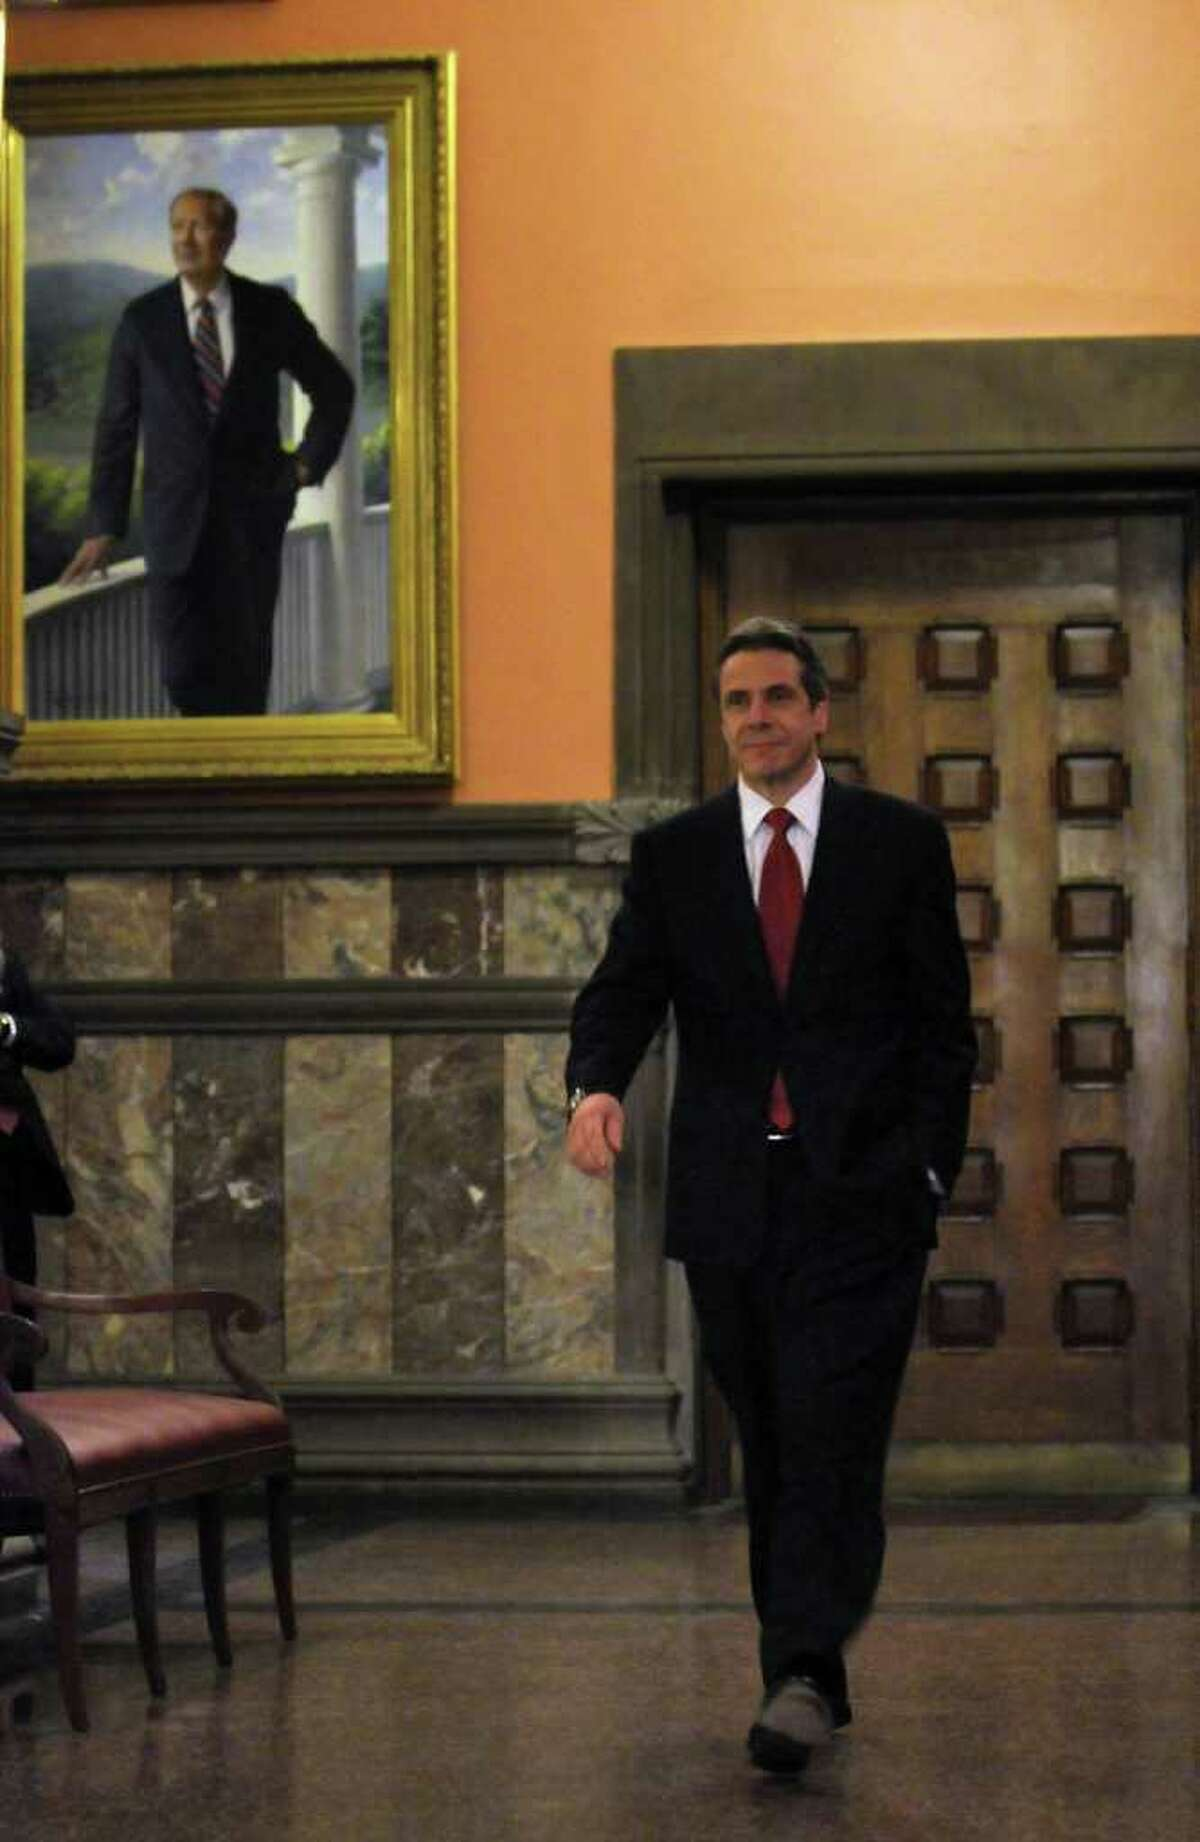 Governor Andrew Cuomo walks near a painting of former Governor George Pataki, left, outside of his second floor office to discuss Monday's opening day of the legislative session in the Capitol in Albany, NY on January 10, 2011. ( Philip Kamrass / Times Union )